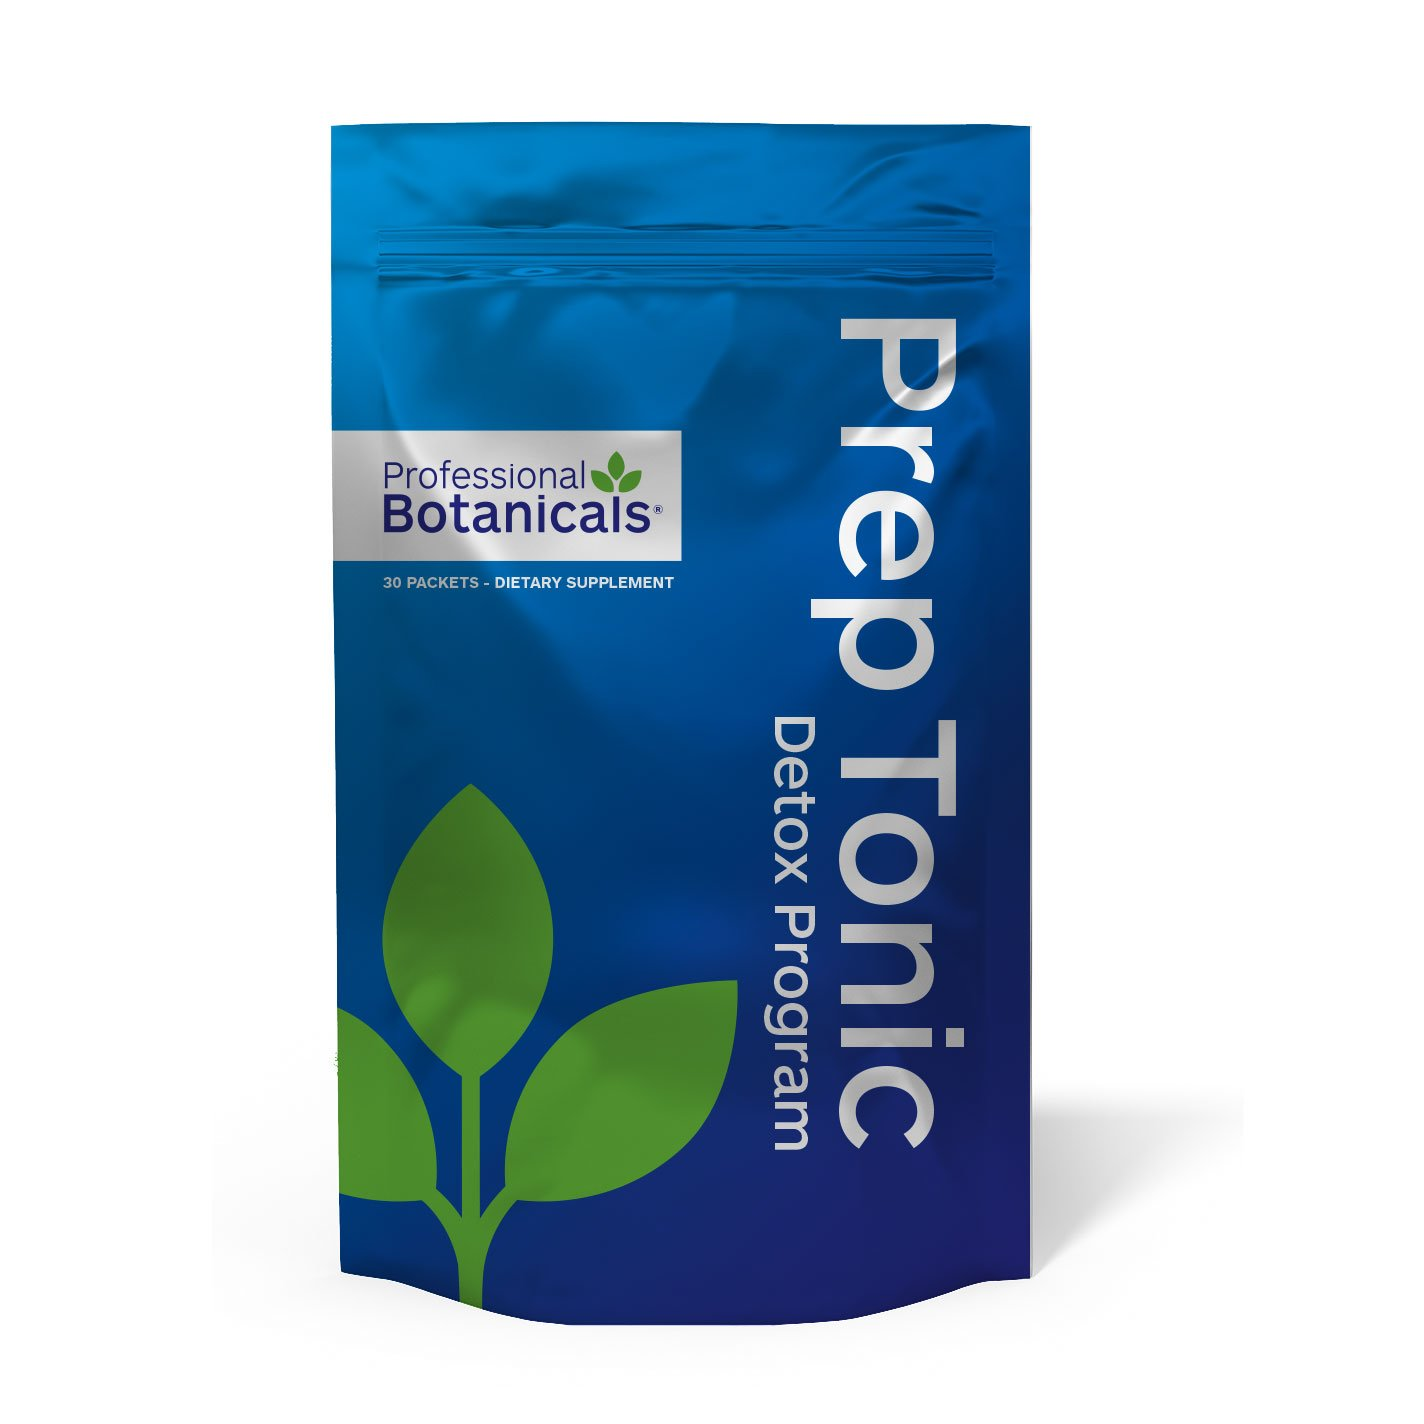 Professional Botanicals Prep Tonic Program - Gentle Detoxification Multi Organ Cleanse and Tune Up - Metabolism & Energy Support - 30 packets